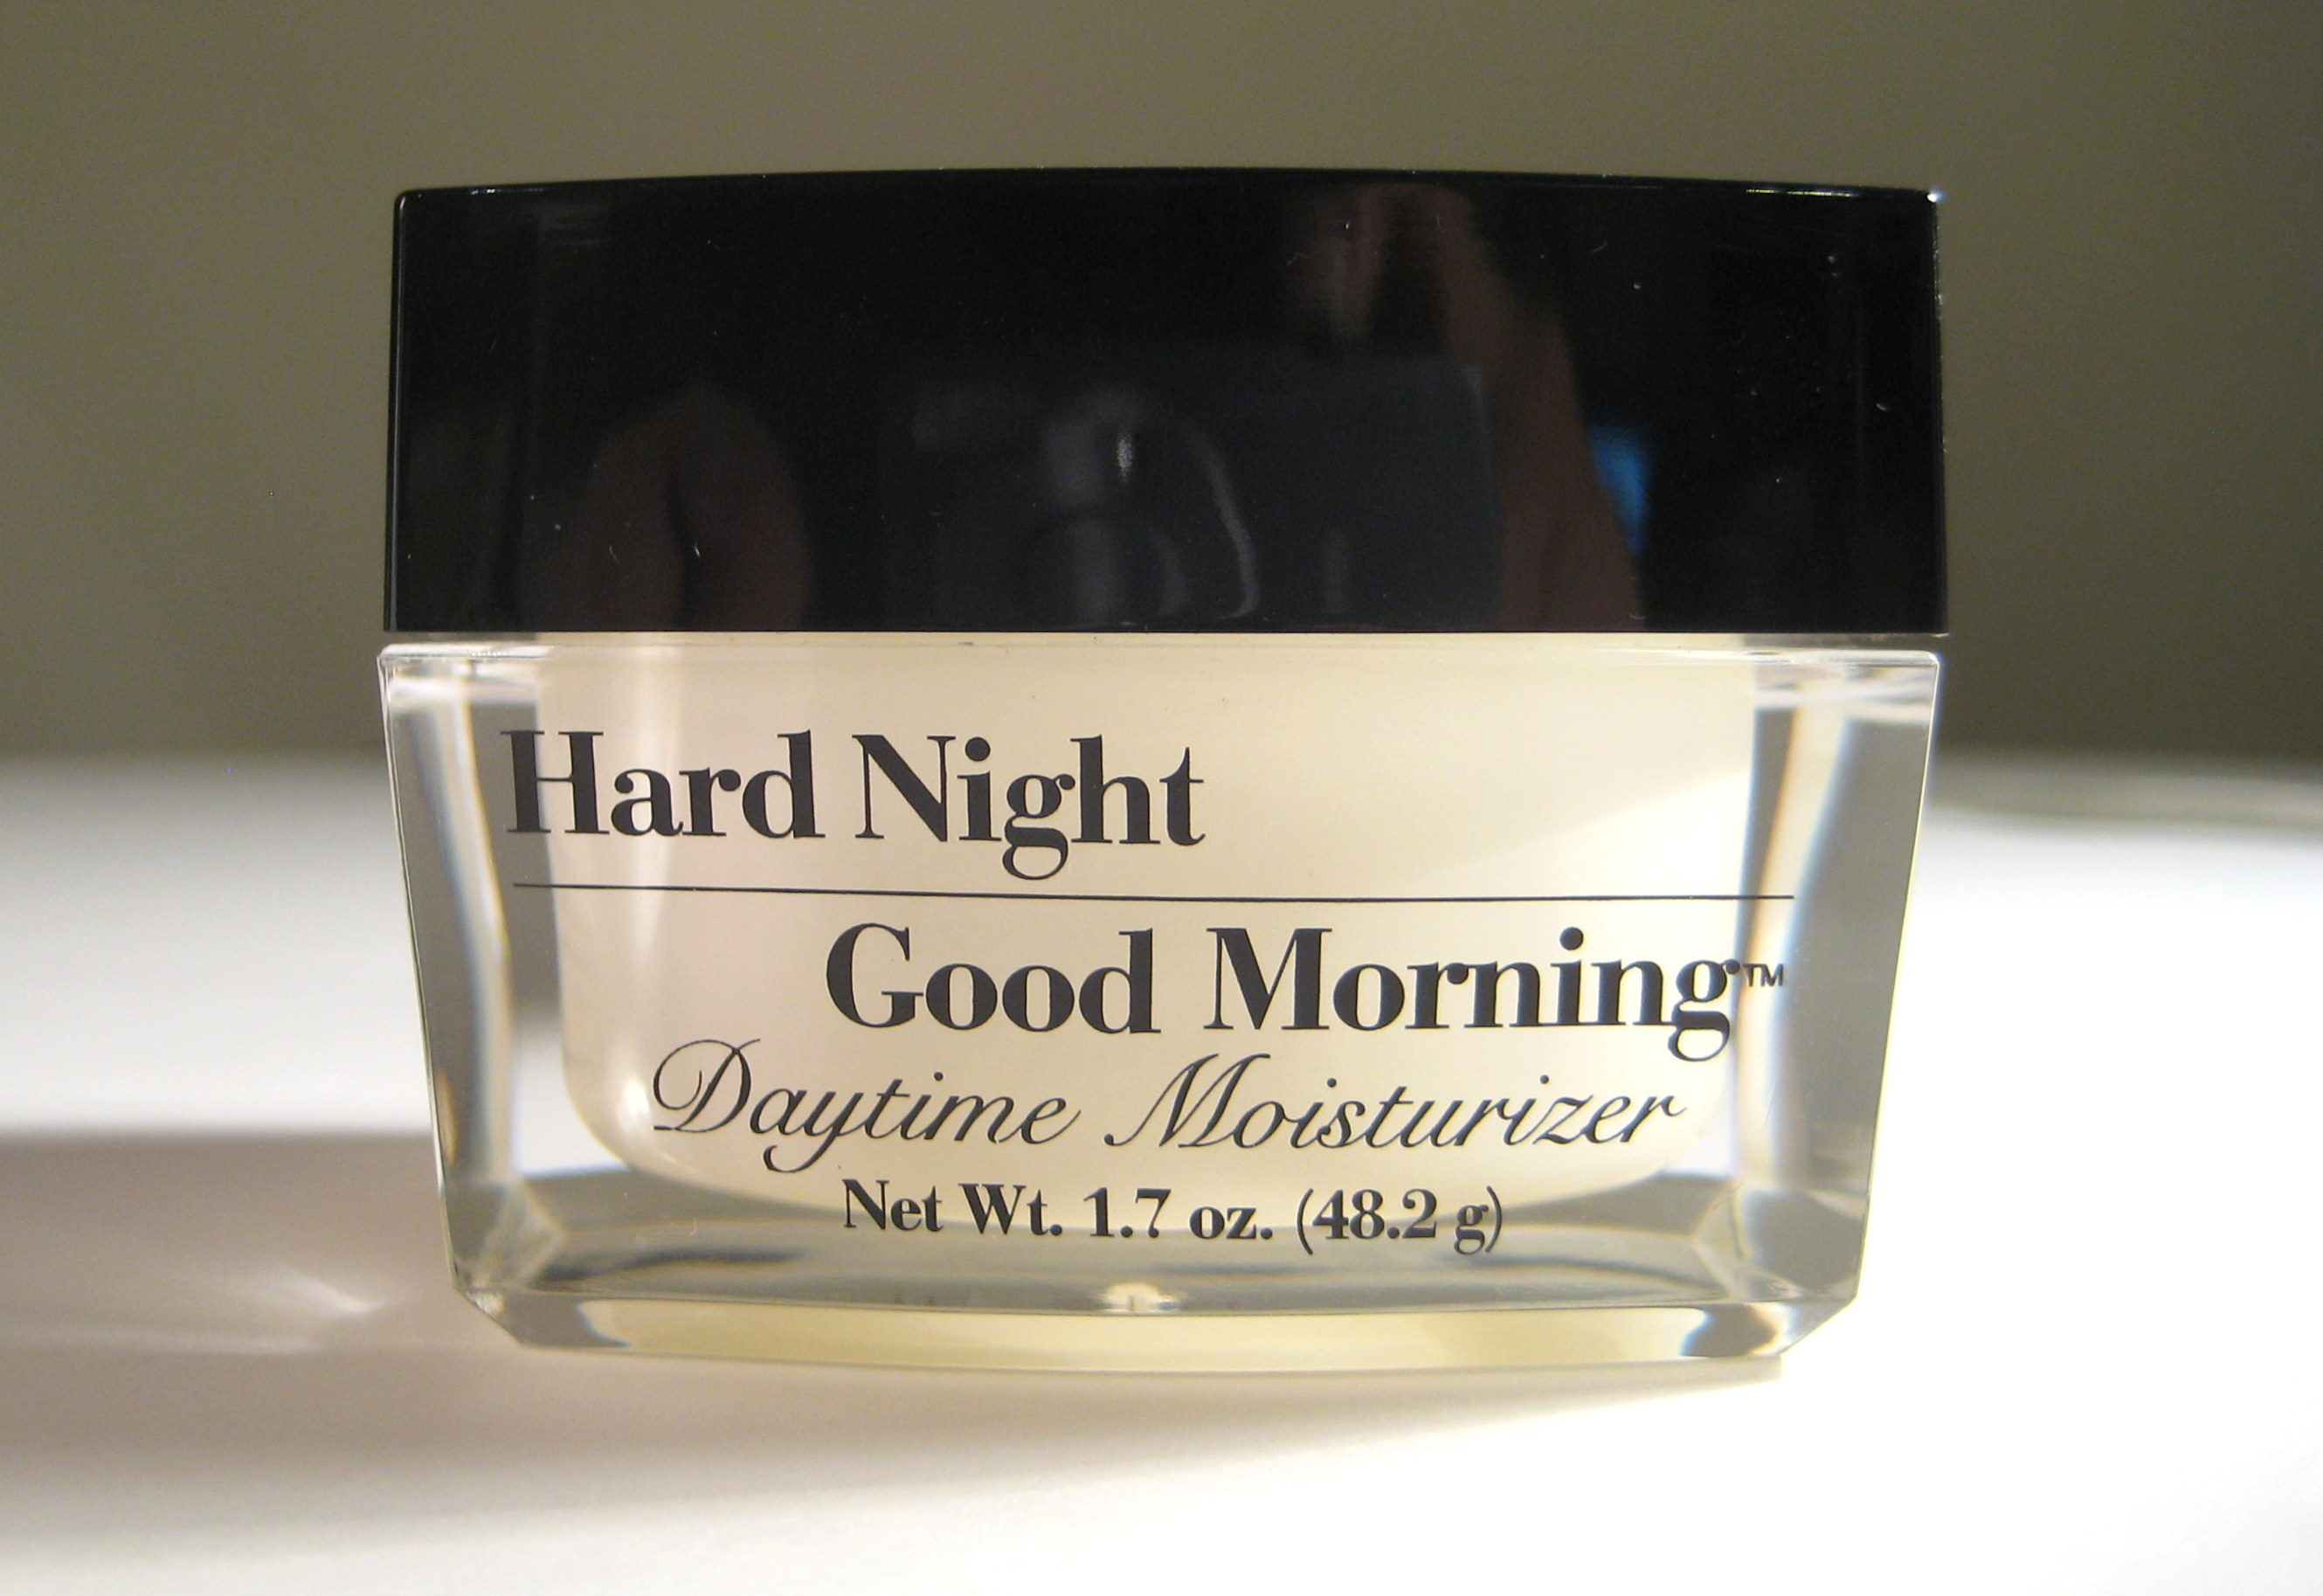 Hard Night Good Morning Daytime Moisturizer, closed jar, front view